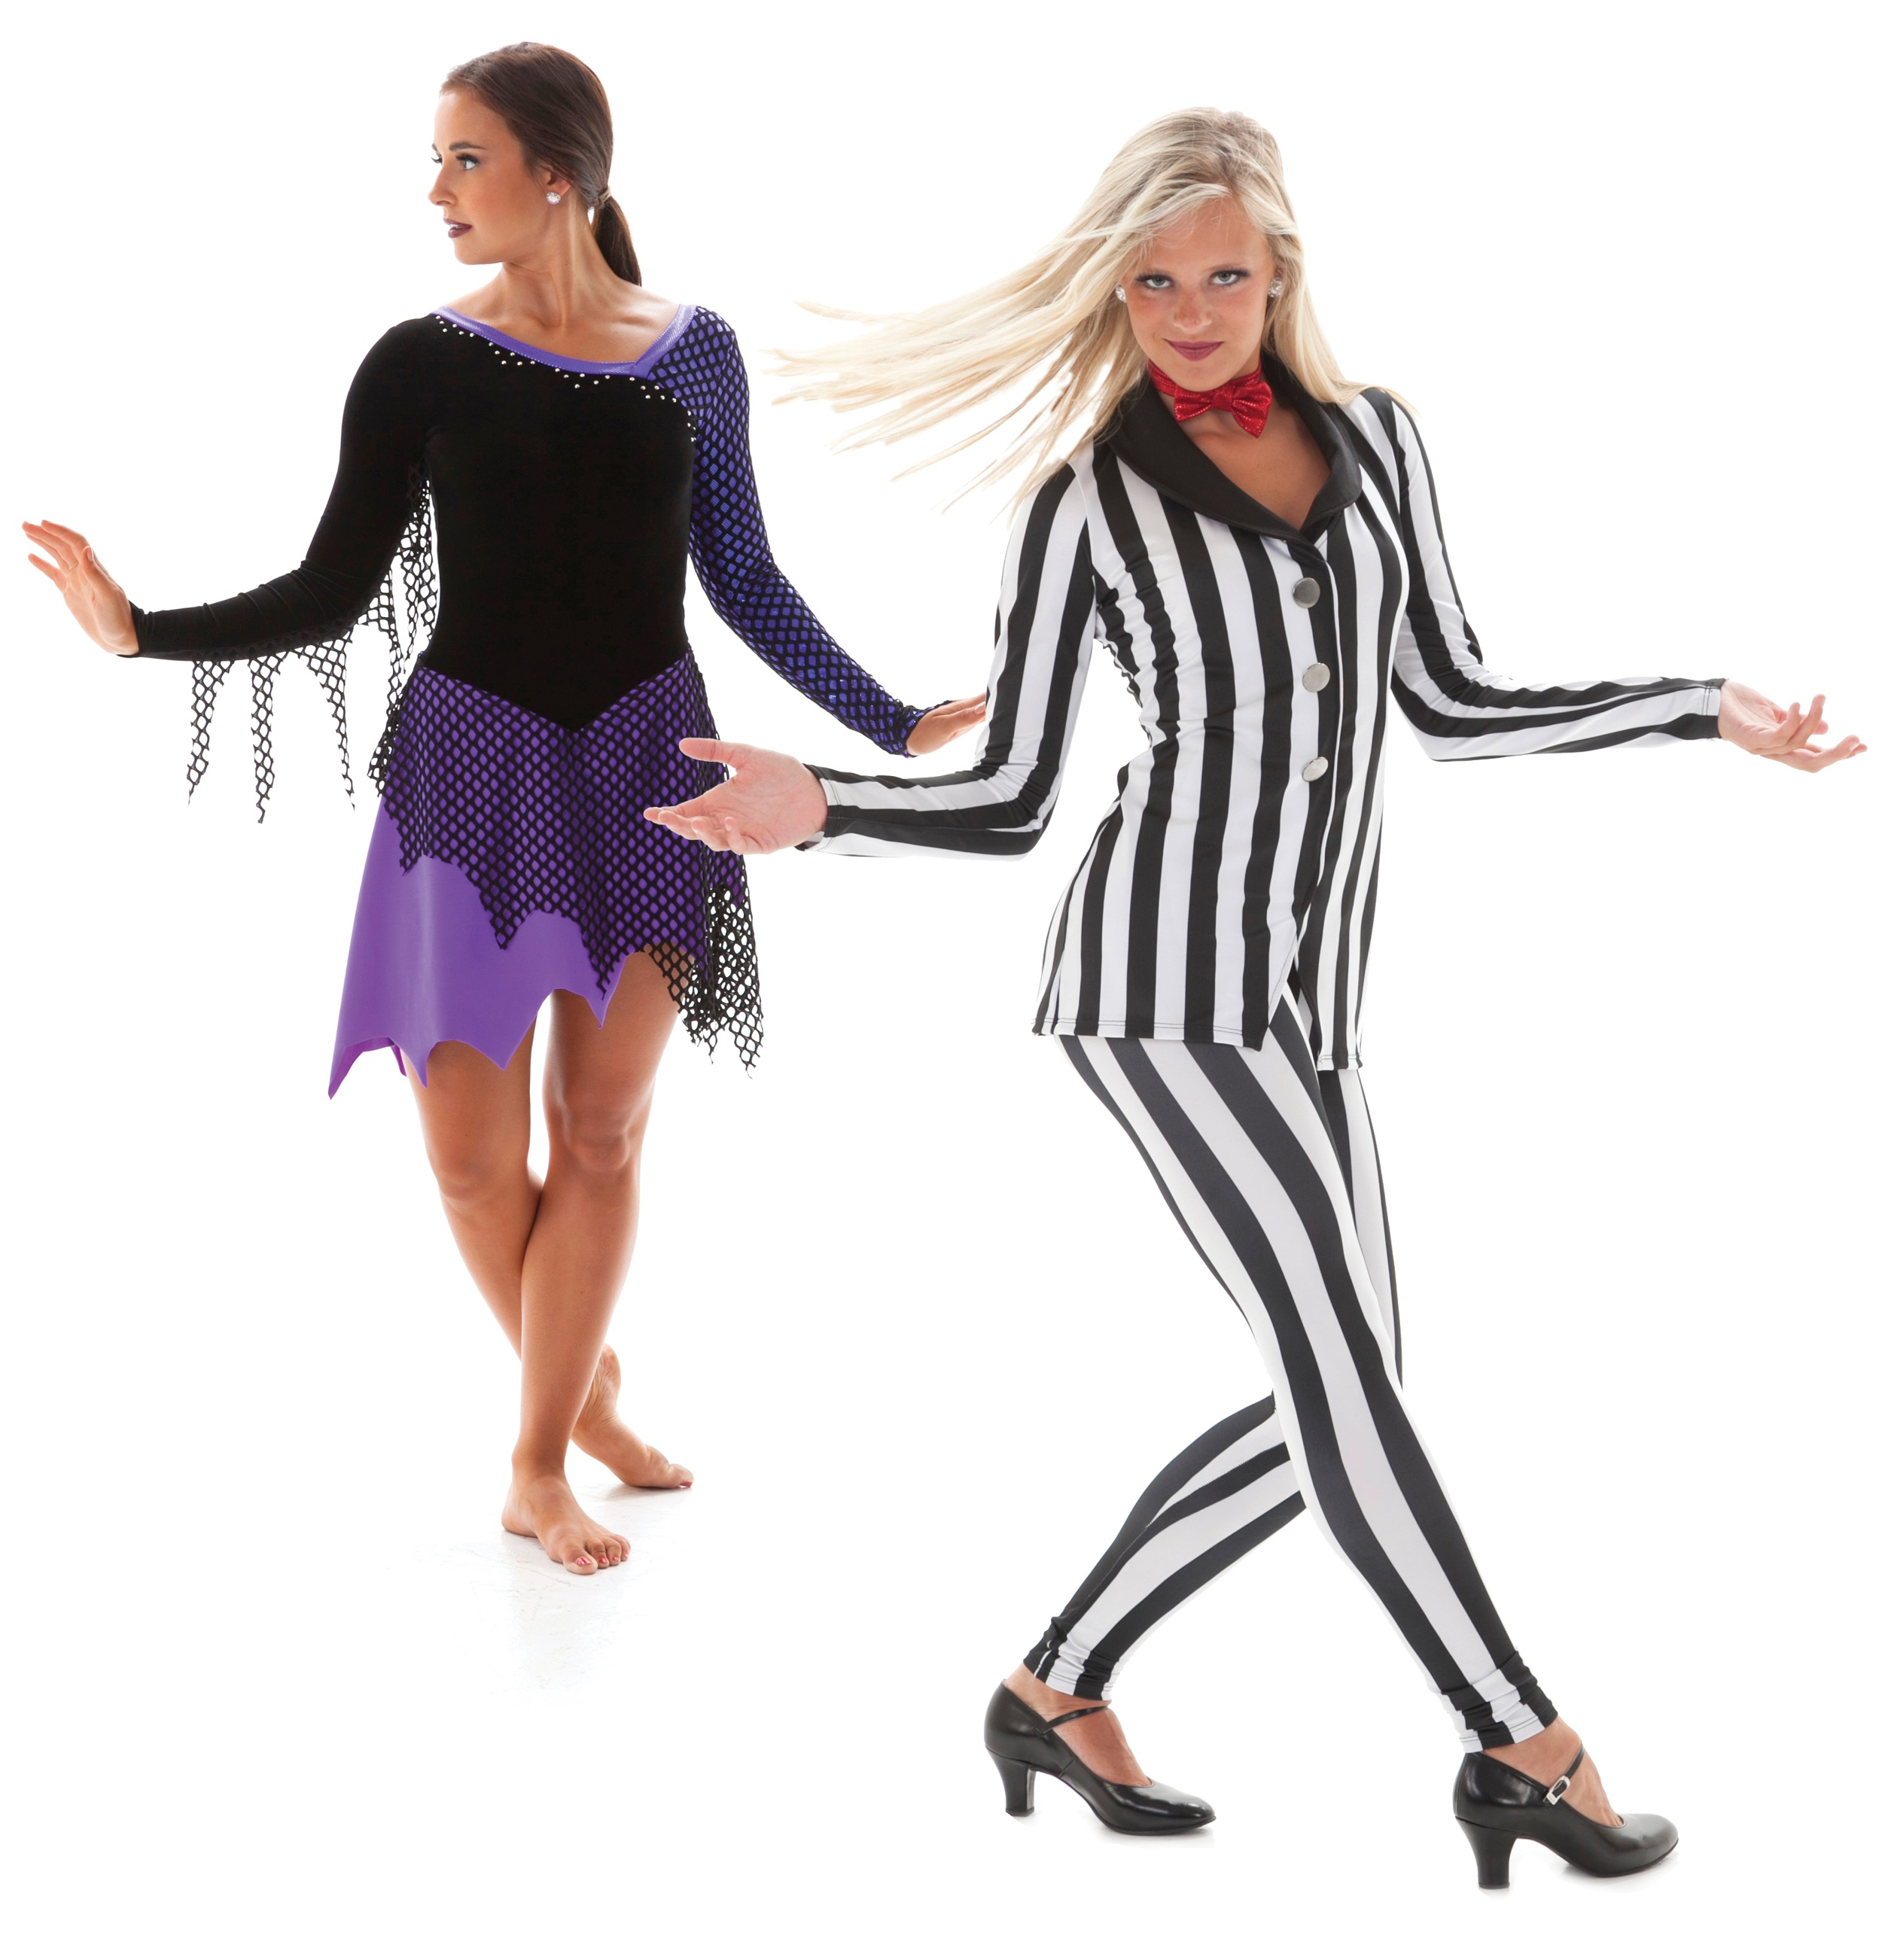 Addams Family Skate dress and Beetlejuice dance costume